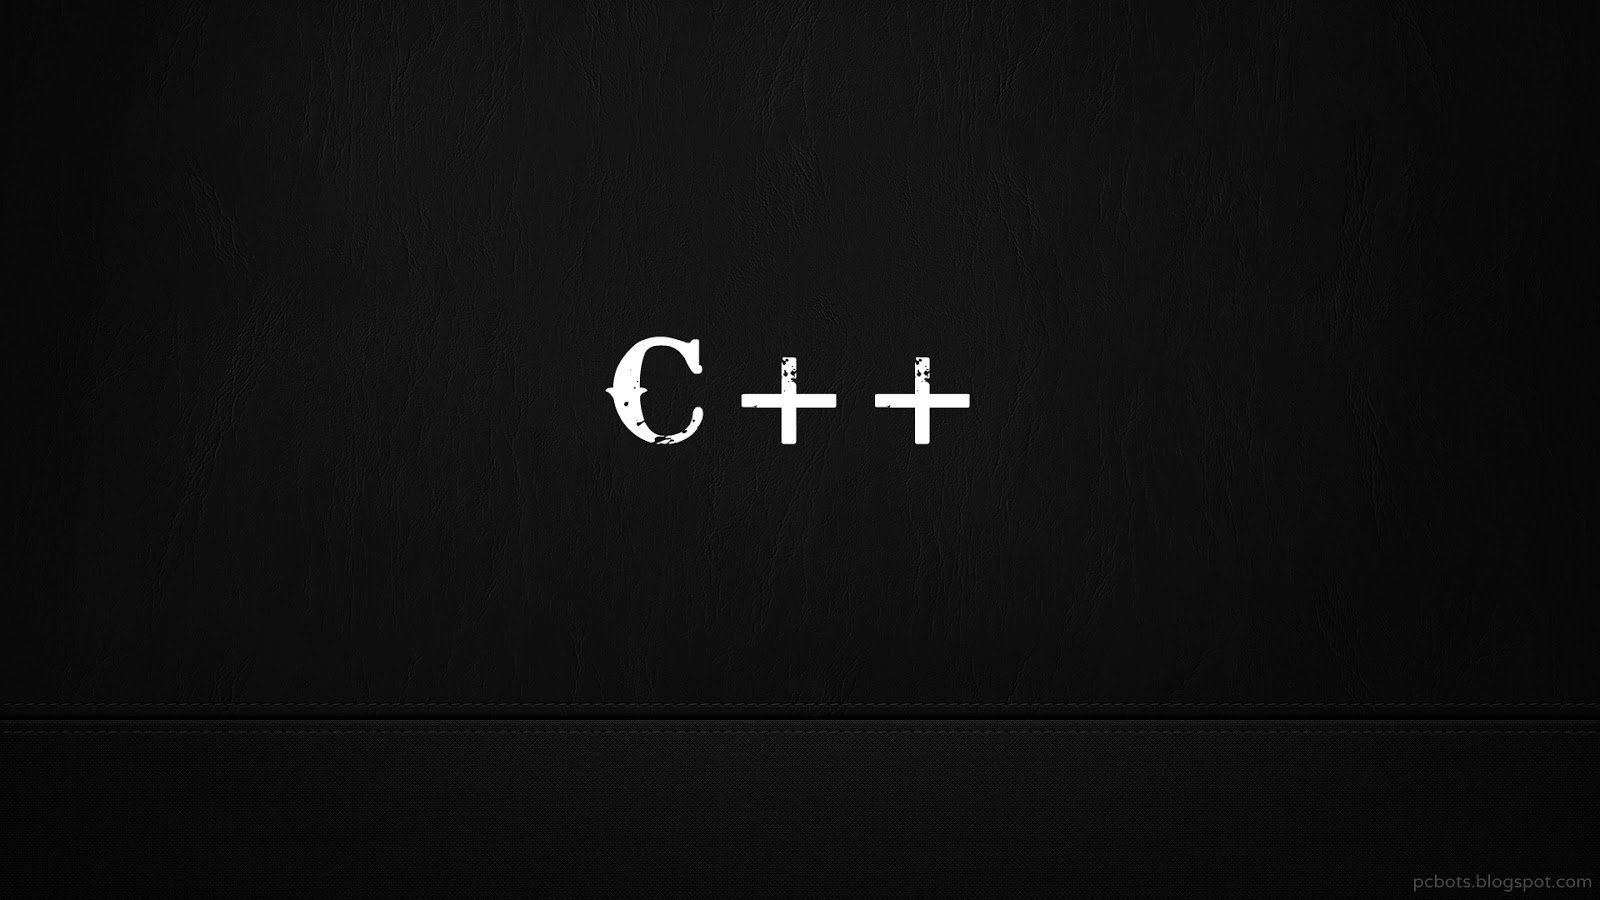 C++ Wallpaper Wallpaper and Background Image | 1600x900 ...